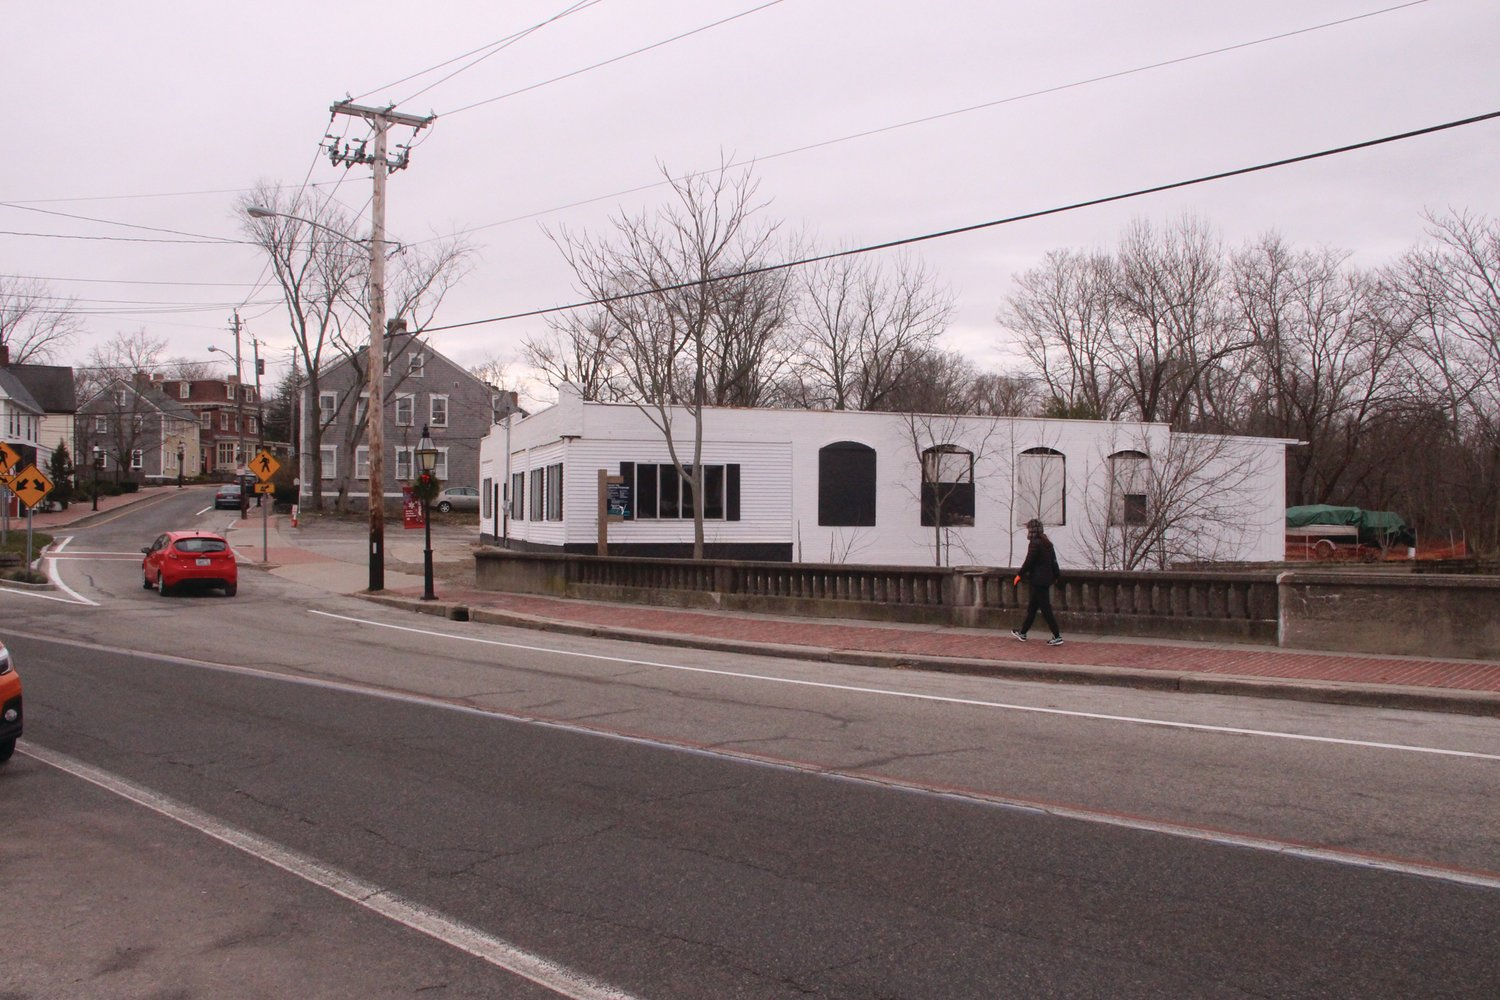 WHAT IT LOOKS LIKE TODAY: The former Hunter's Garage in Pawtuxet as it appears today.